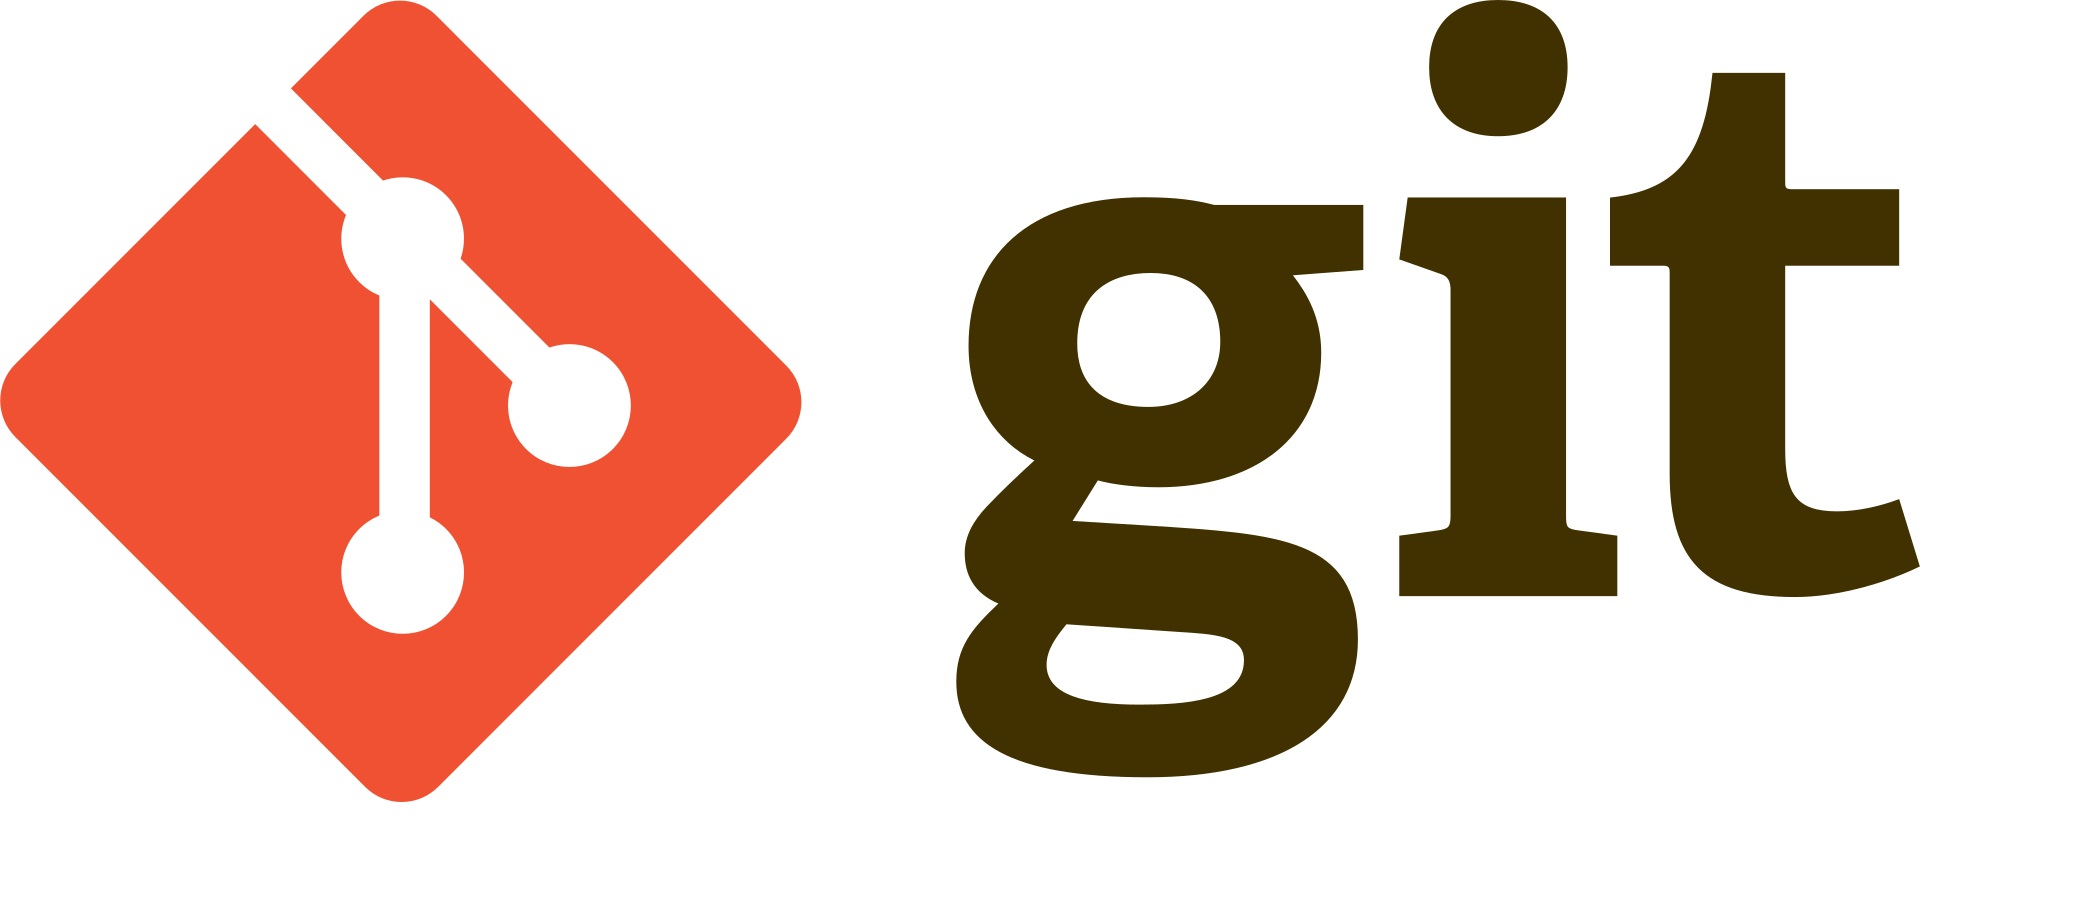 Difference Between Git and Bitbucket